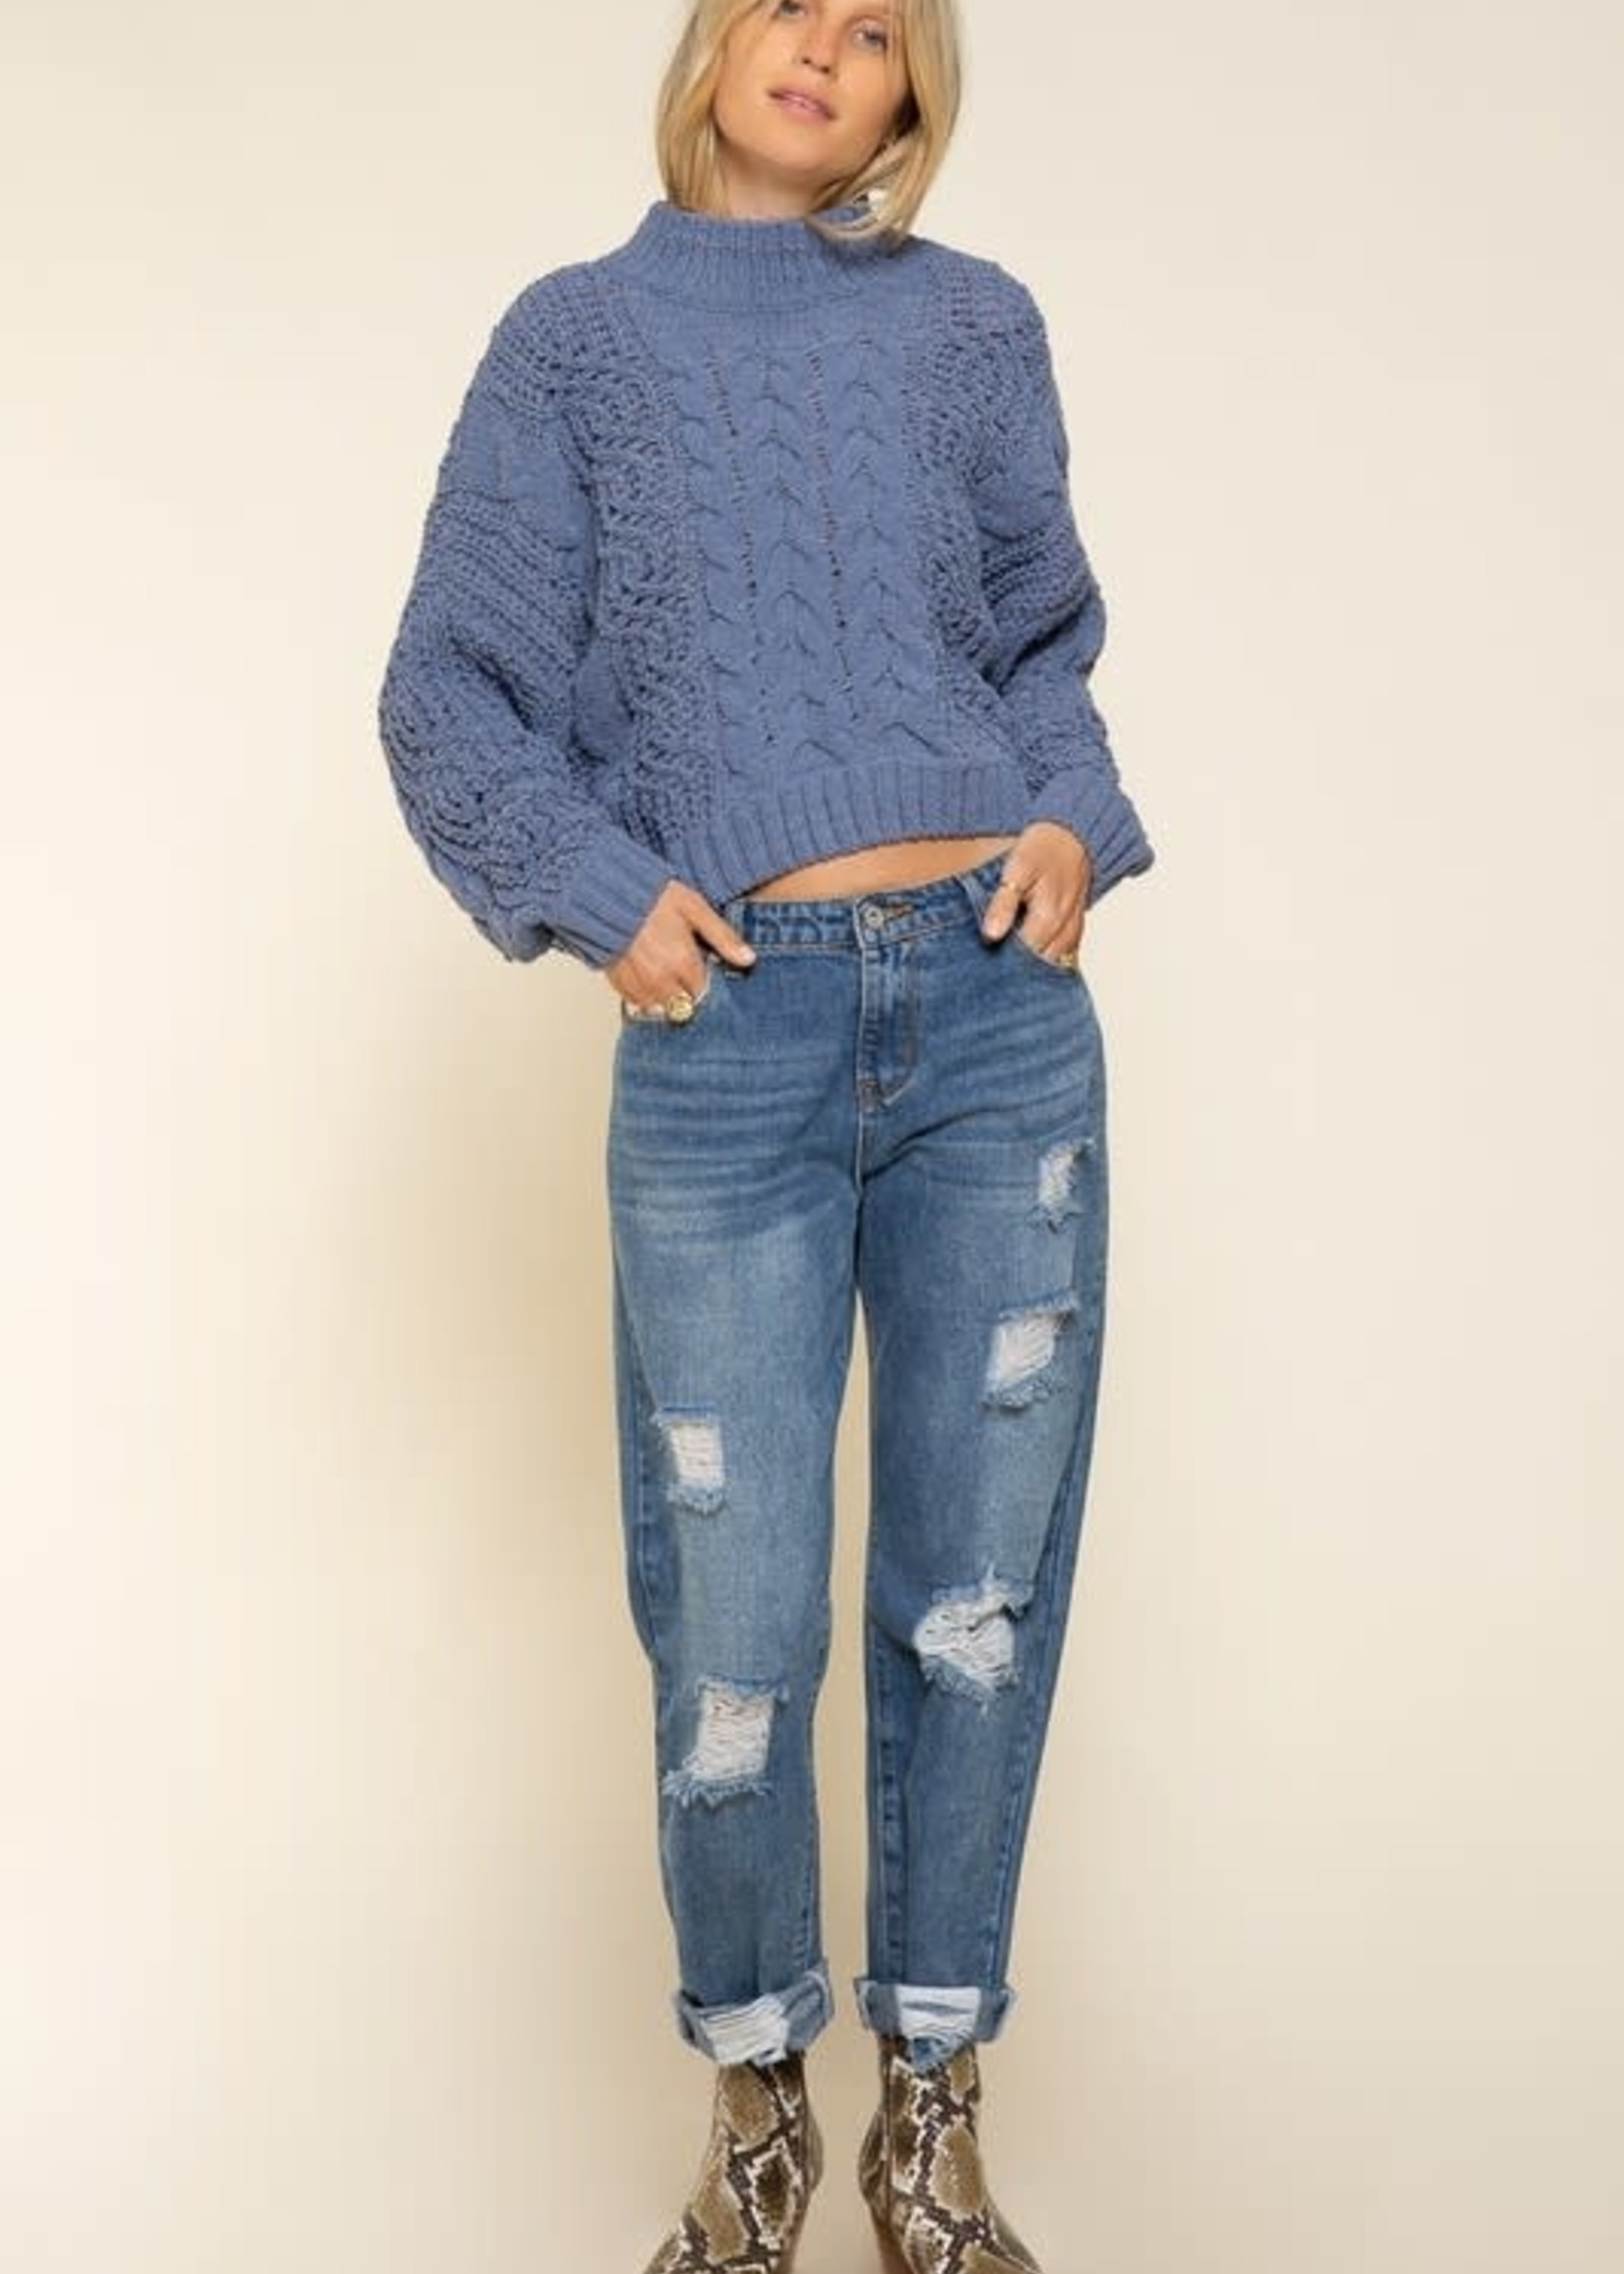 Free To Be Me Sweater (3 Colors)